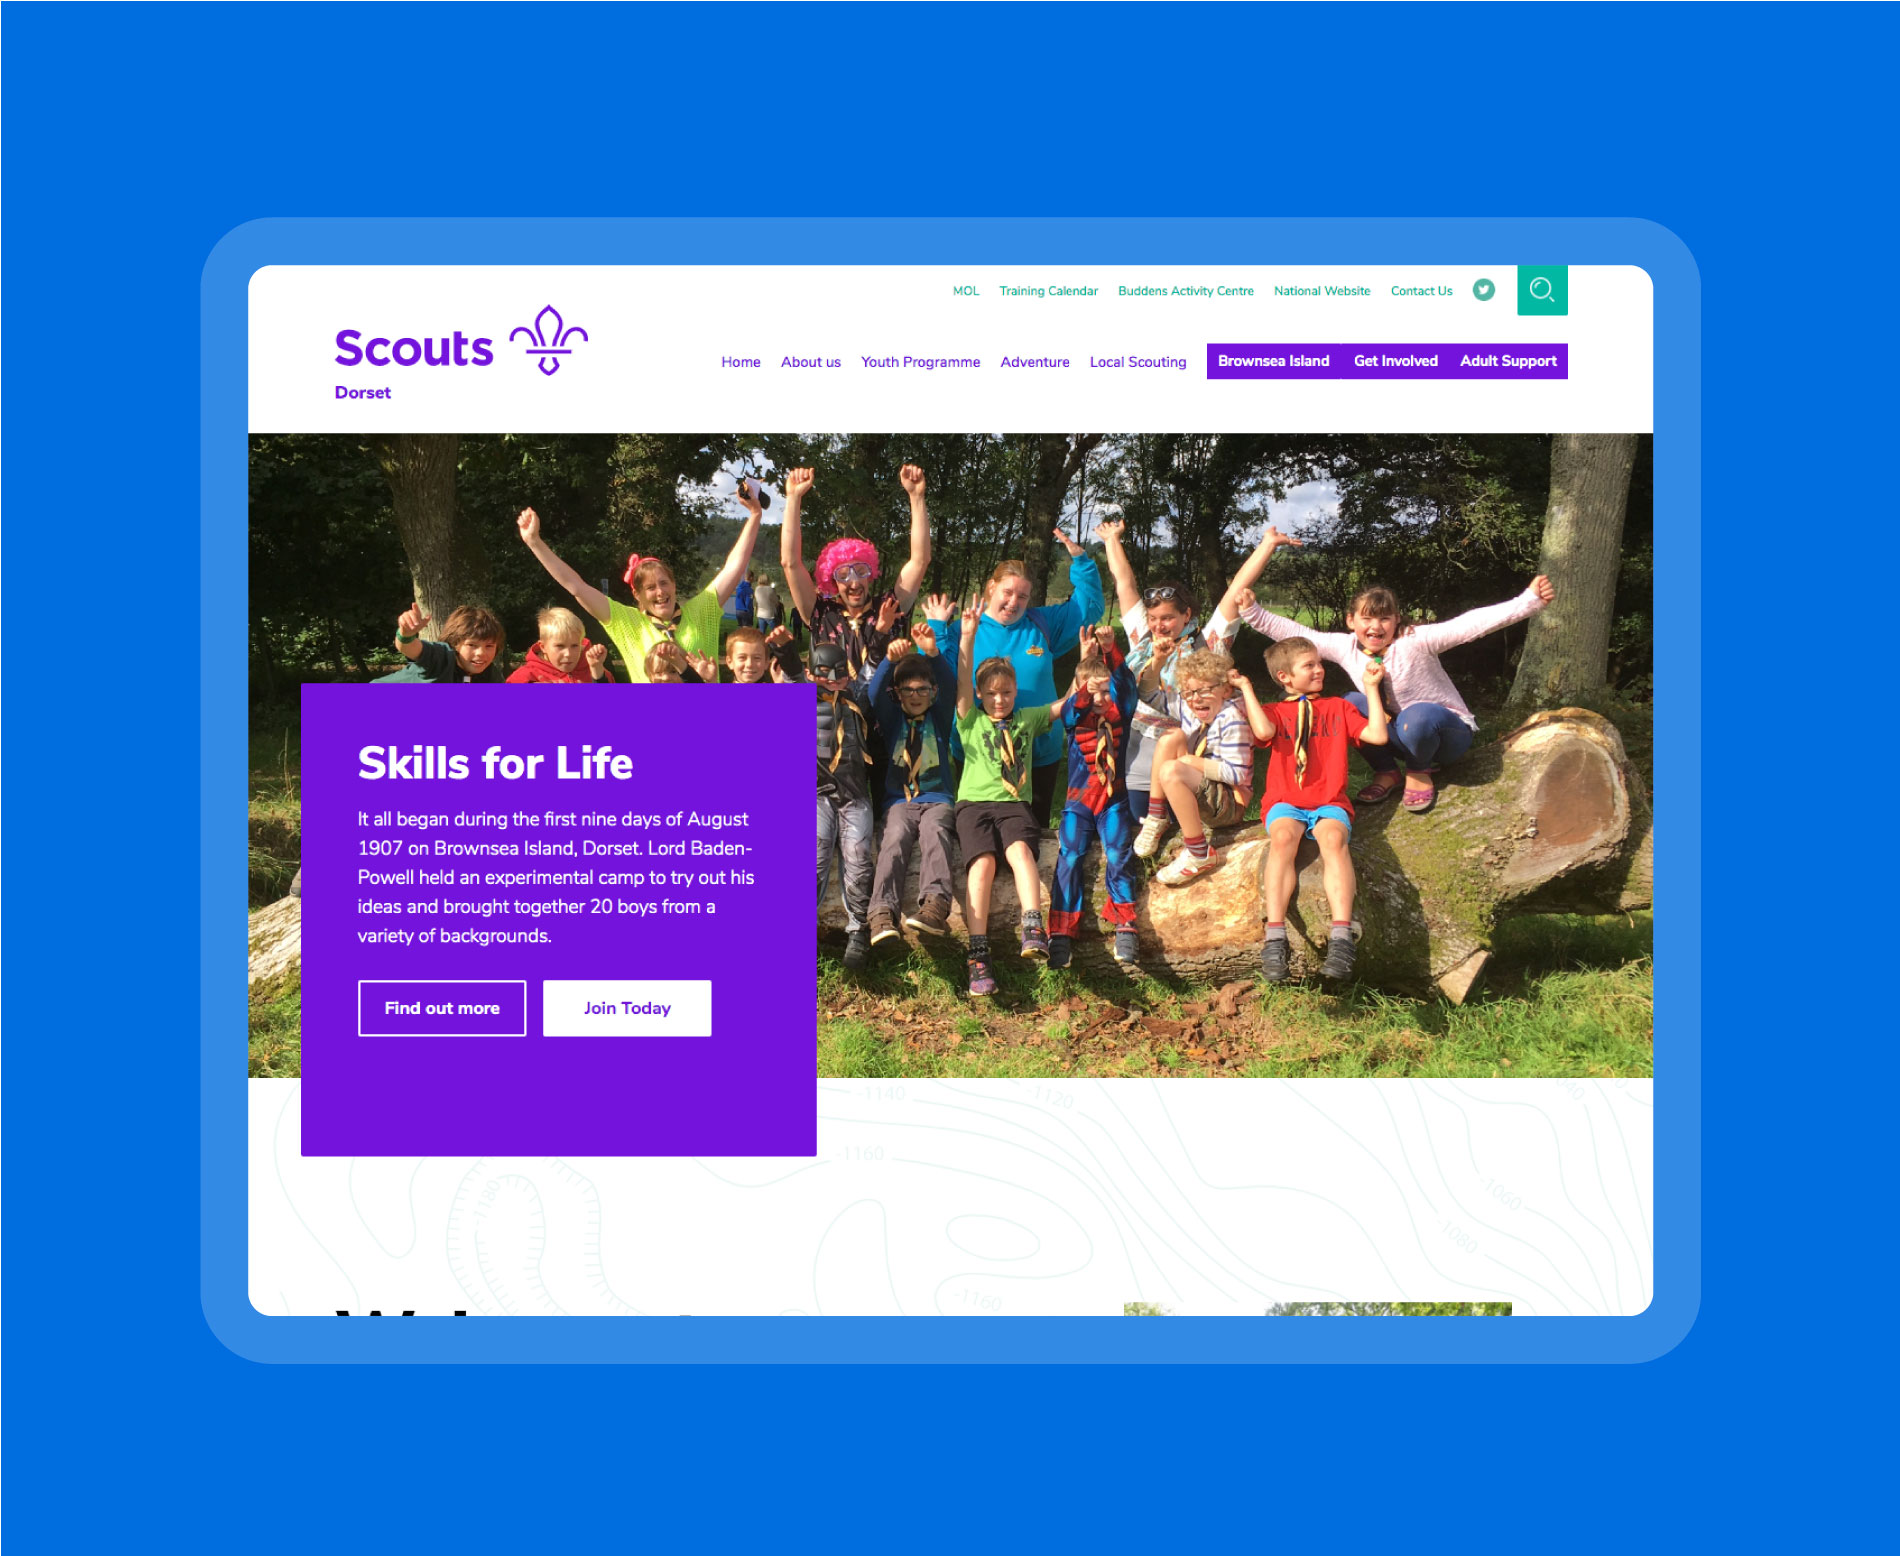 Dorset Scouts is home to over 6,500 boys and girls aged between 6 and 25.